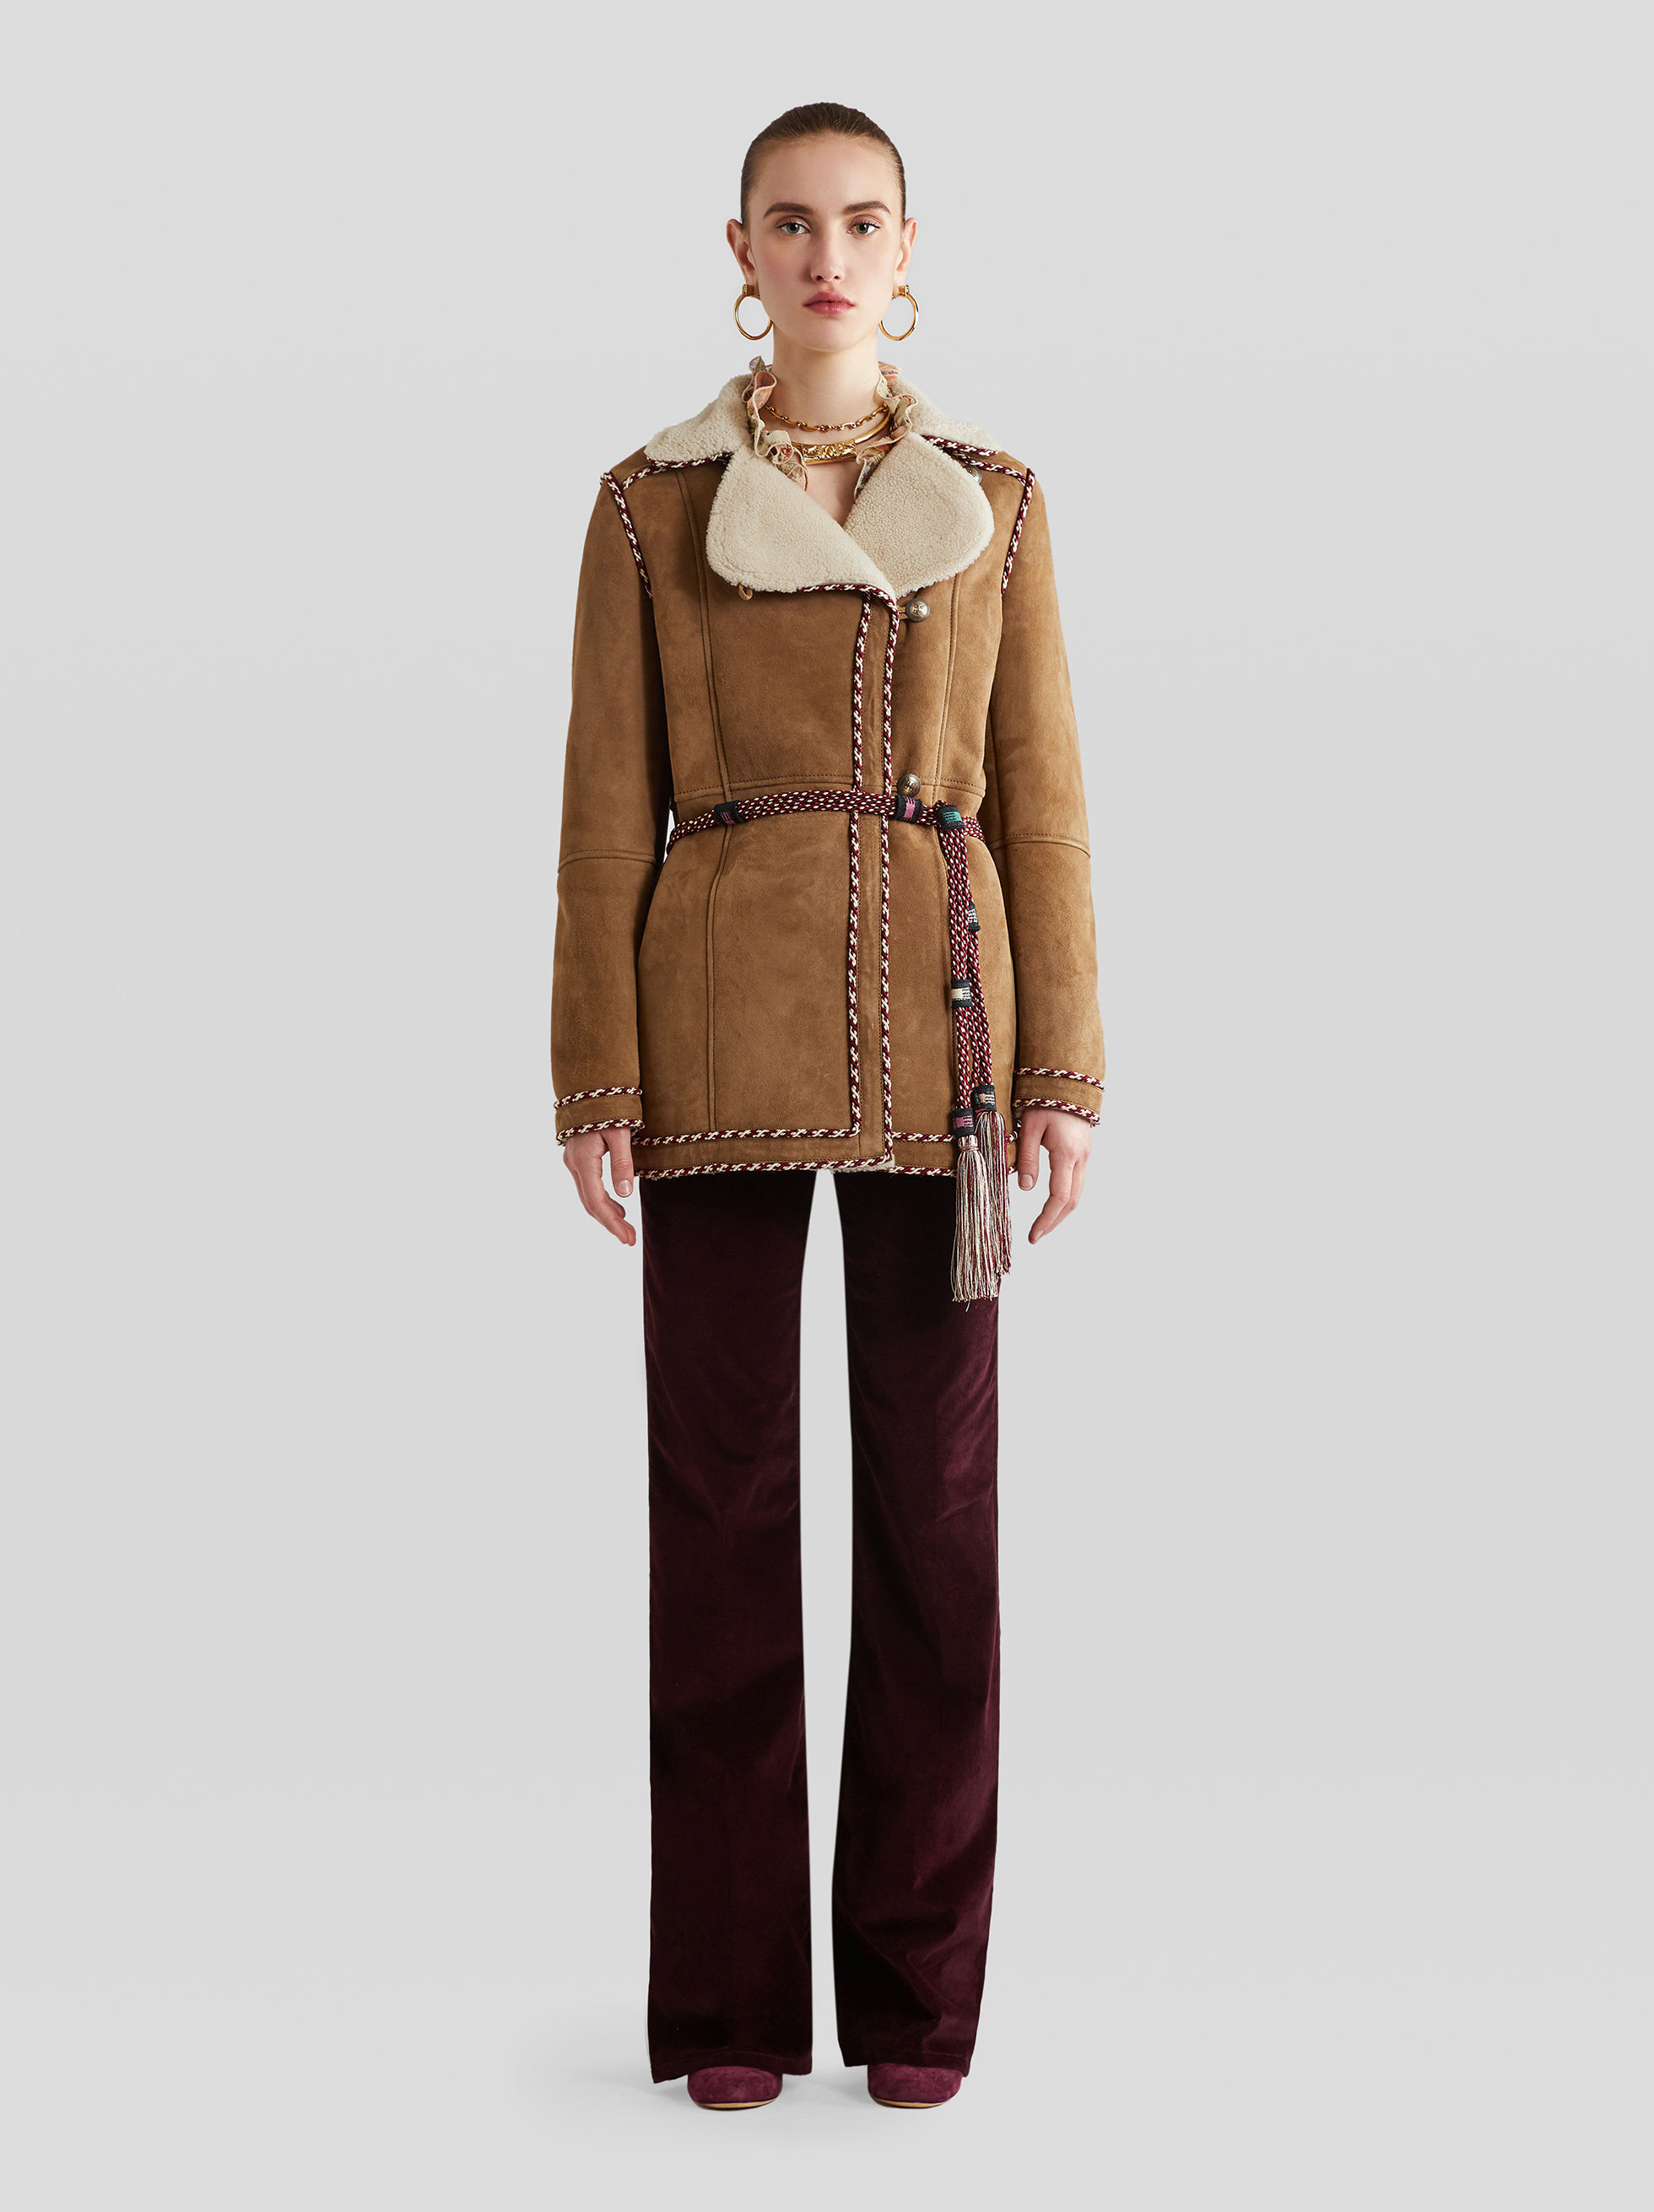 SHEEPSKIN JACKET WITH EMBROIDERY